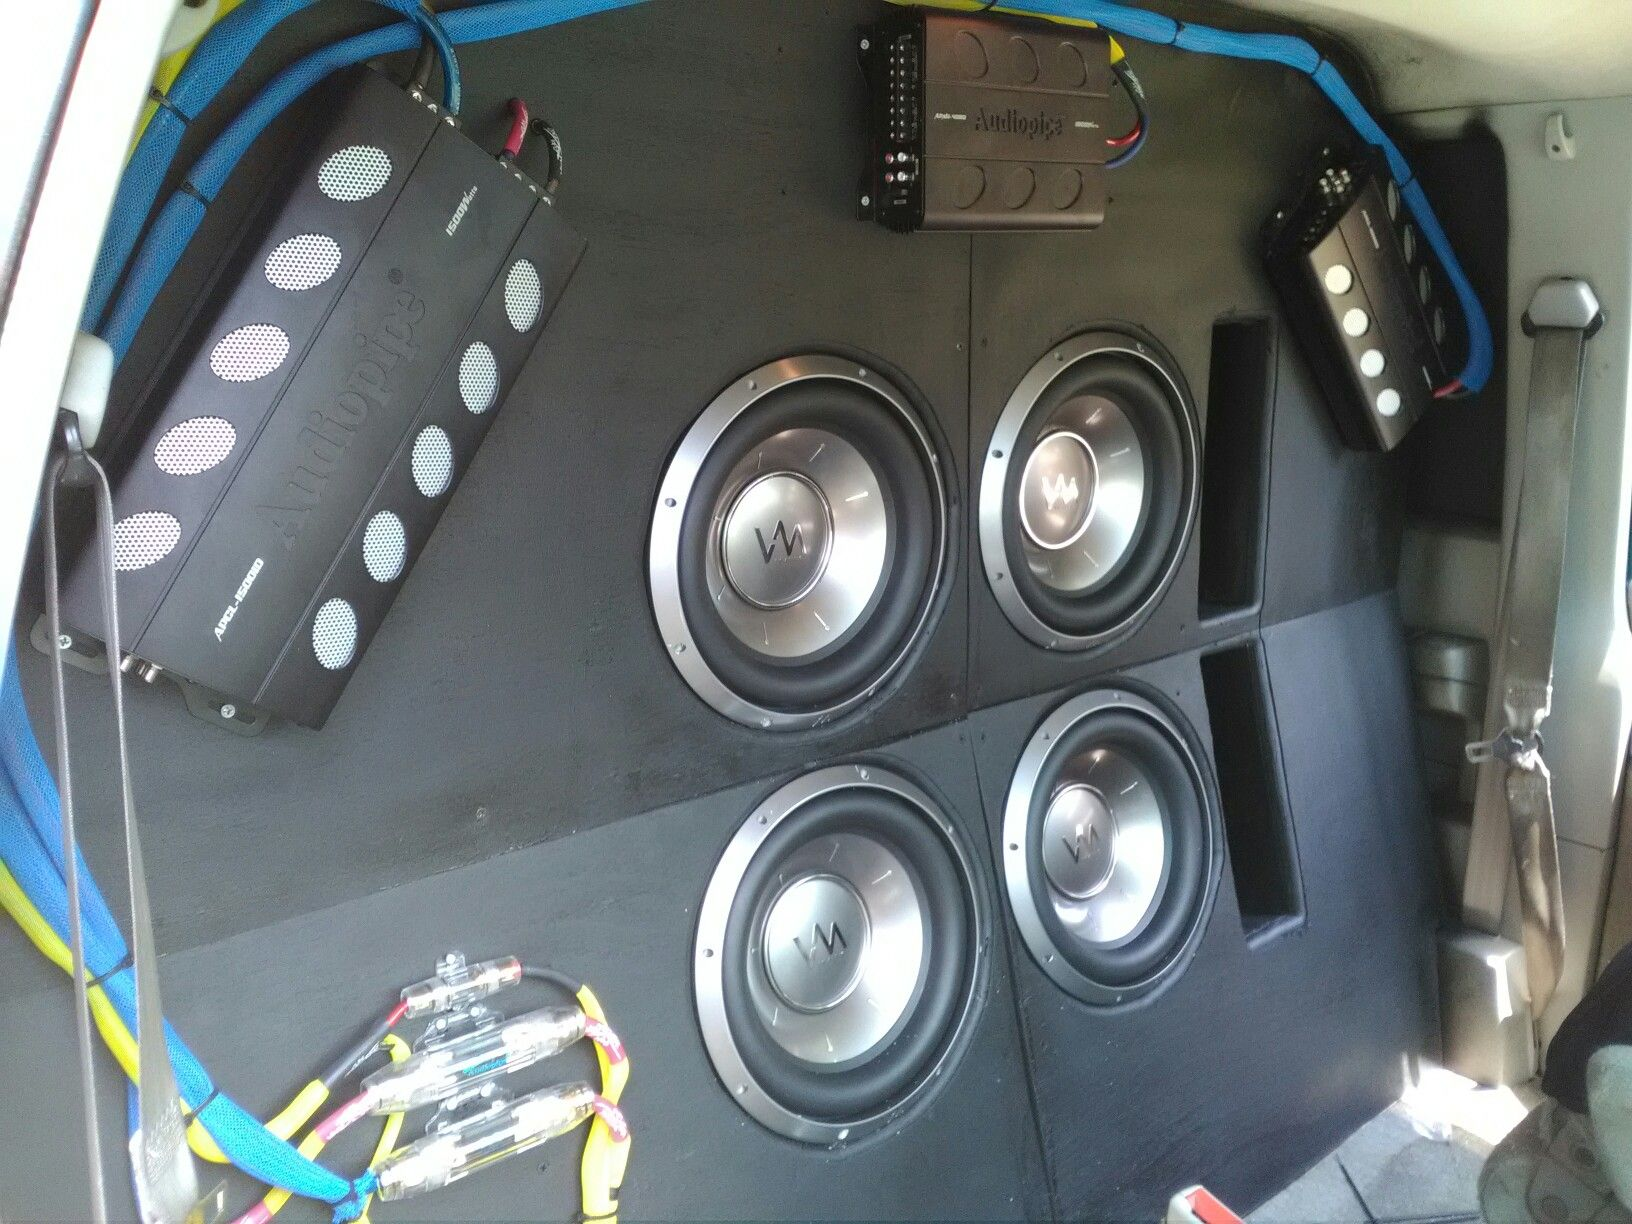 medium resolution of all three amps are wired and have battery voltage next is rca cable and remote wires then connecting dash and door pods